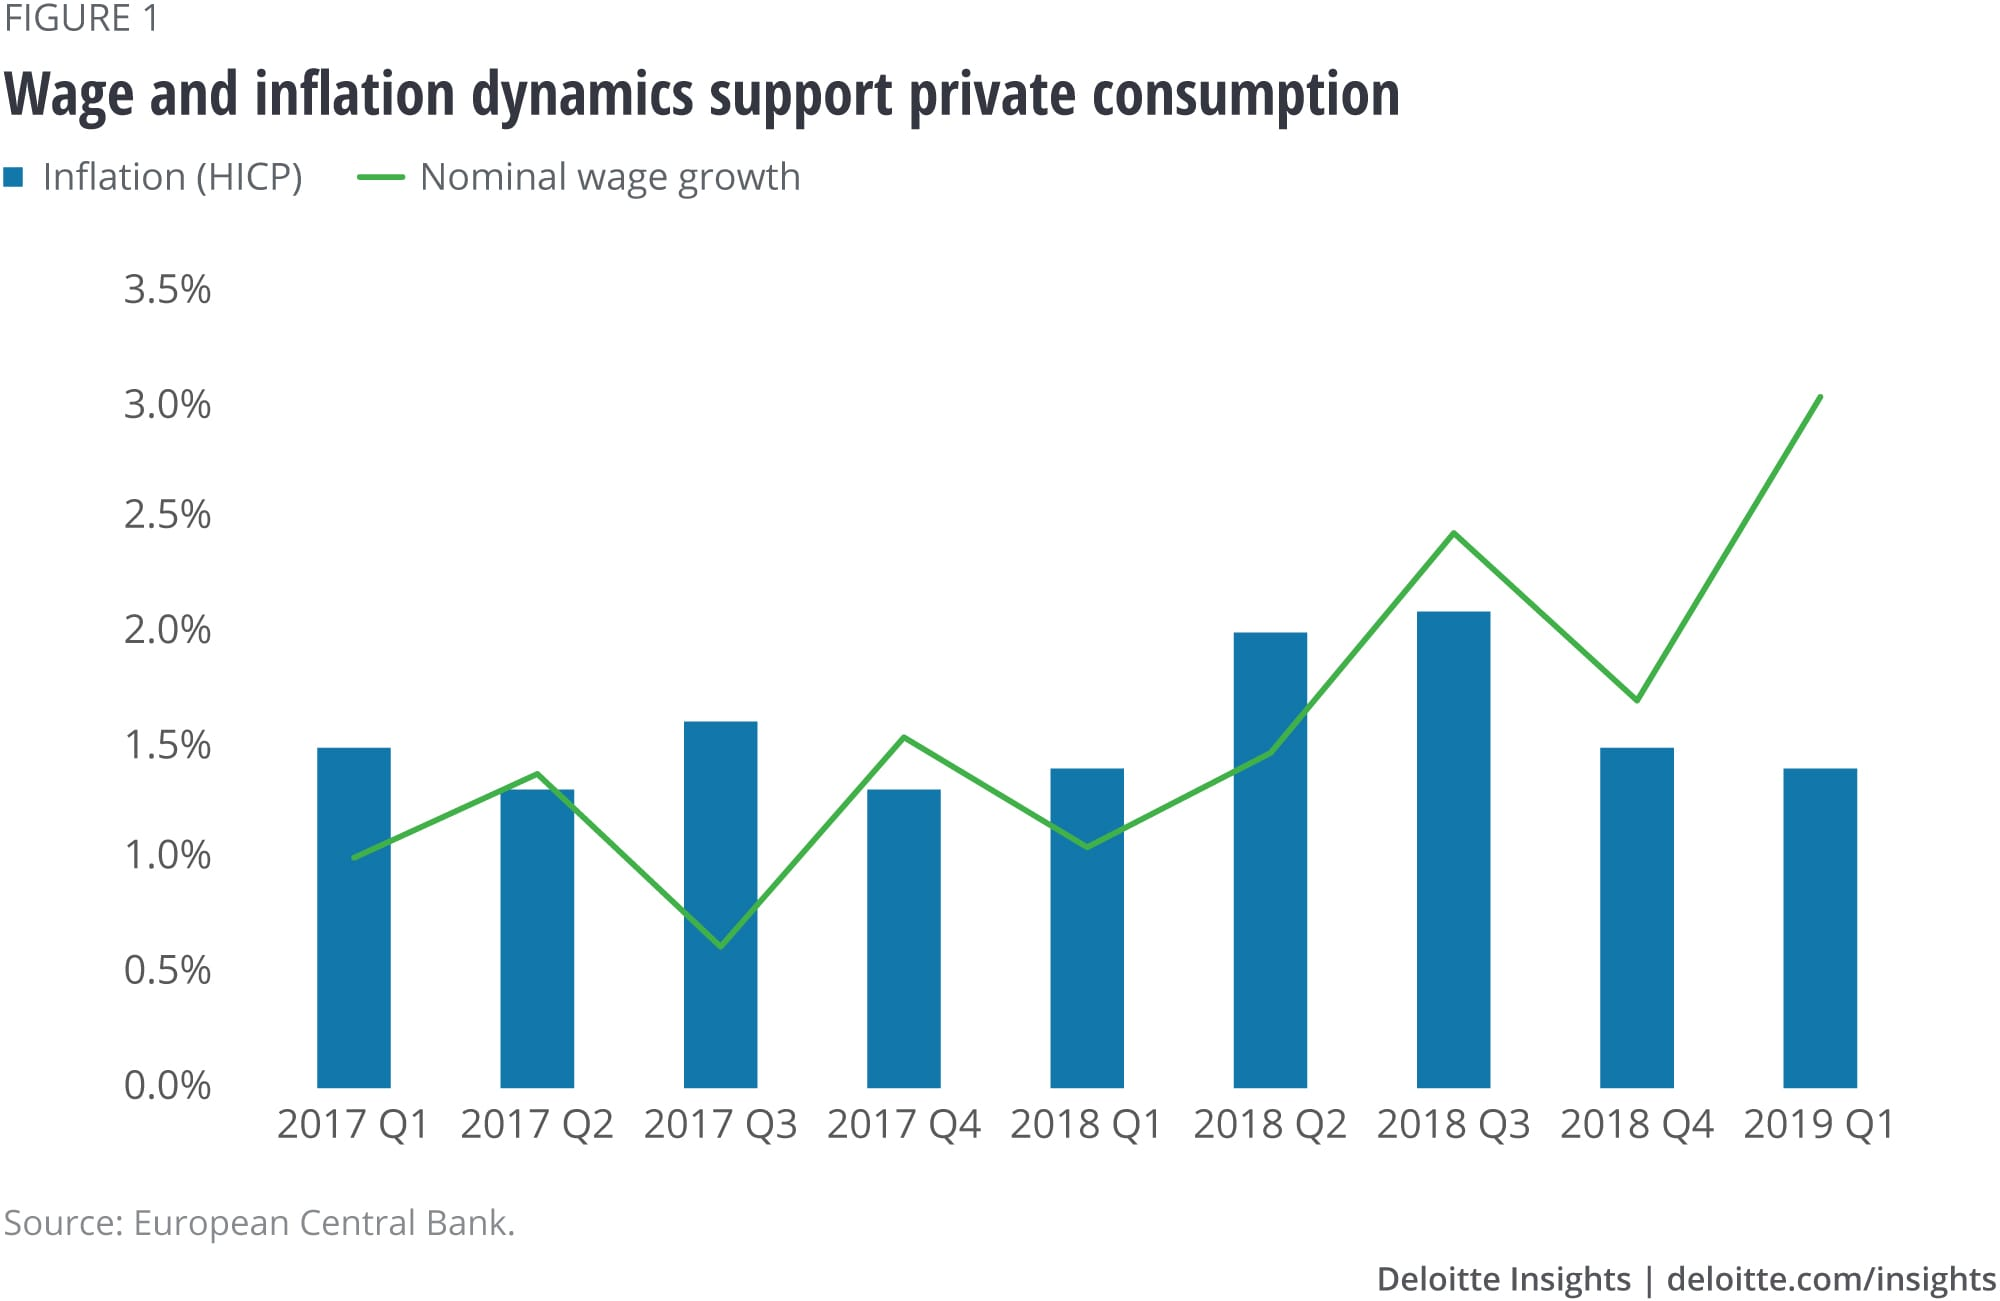 Wage and inflation dynamics support private consumption